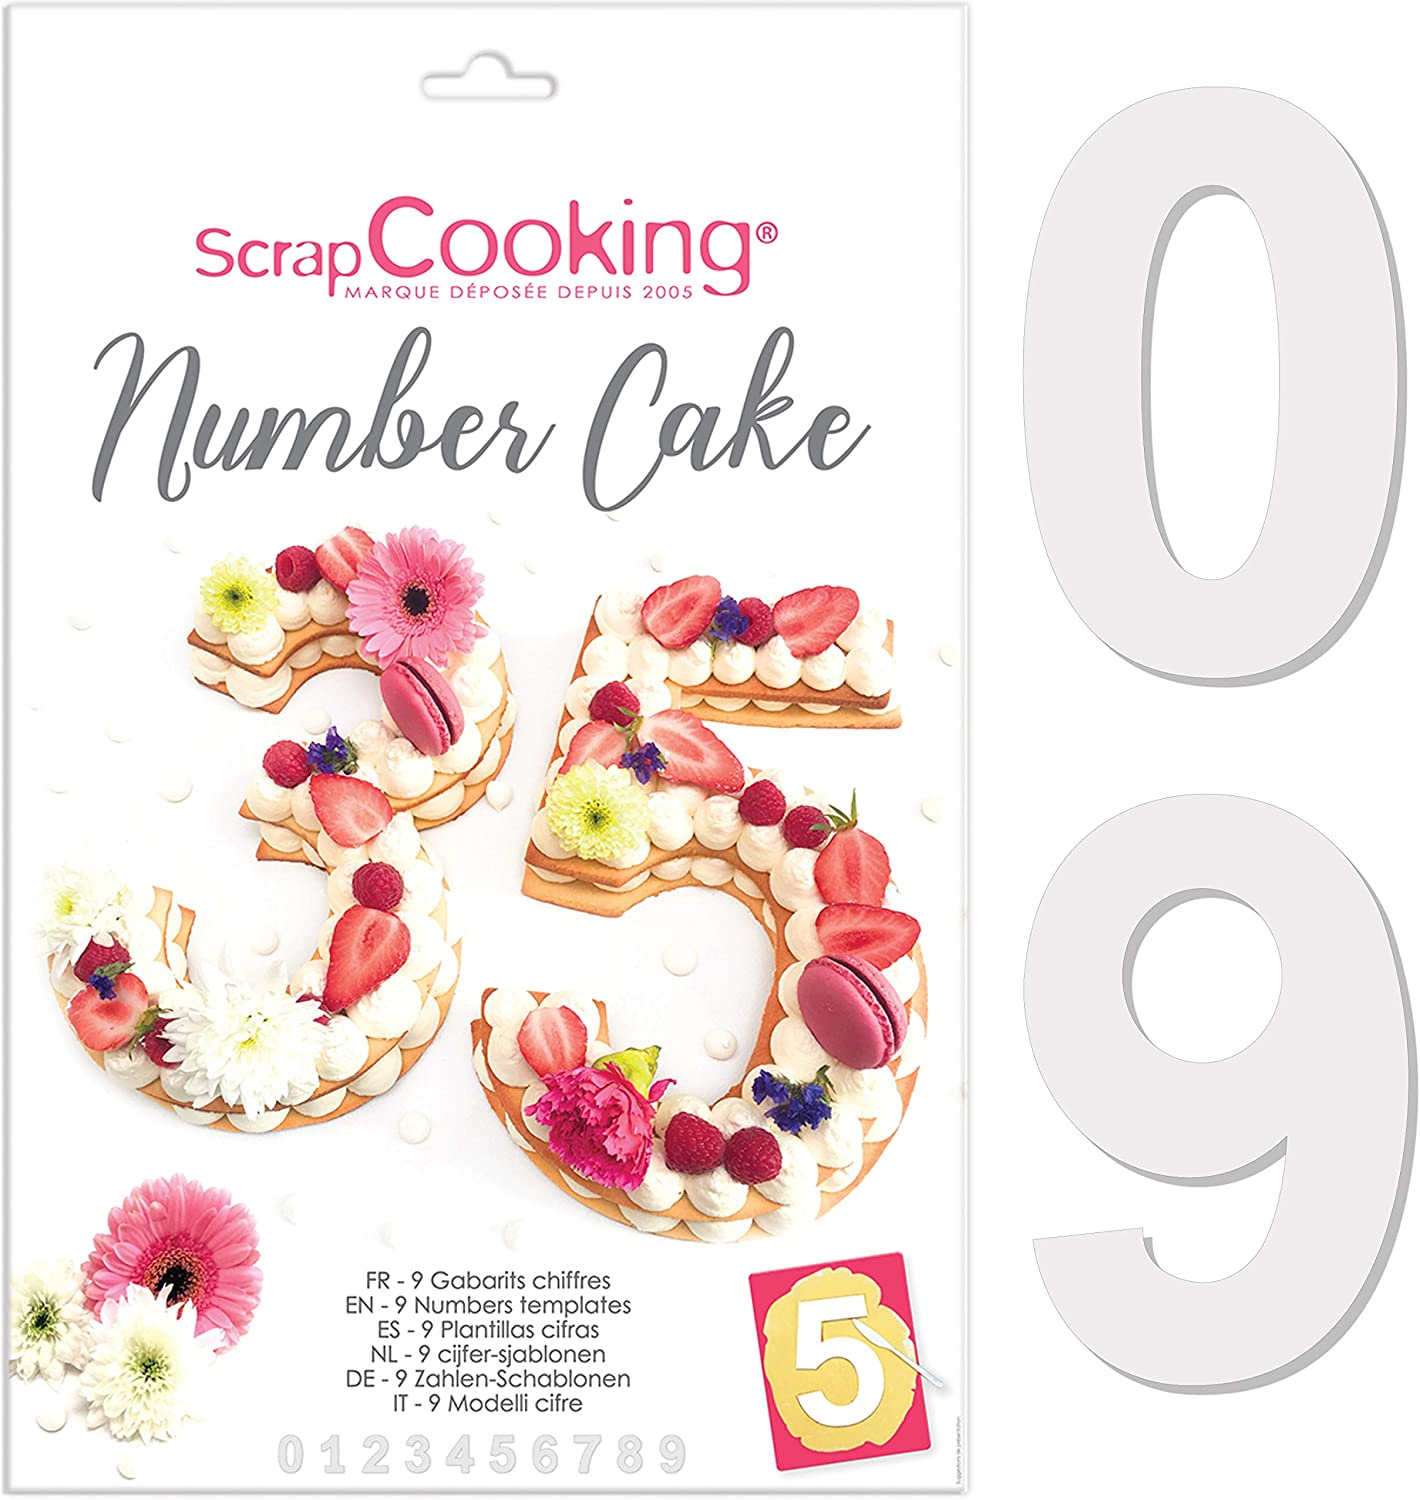 https://clelialam.fr/wp-content/uploads/2021/01/numbercakescrapcooking.jpg